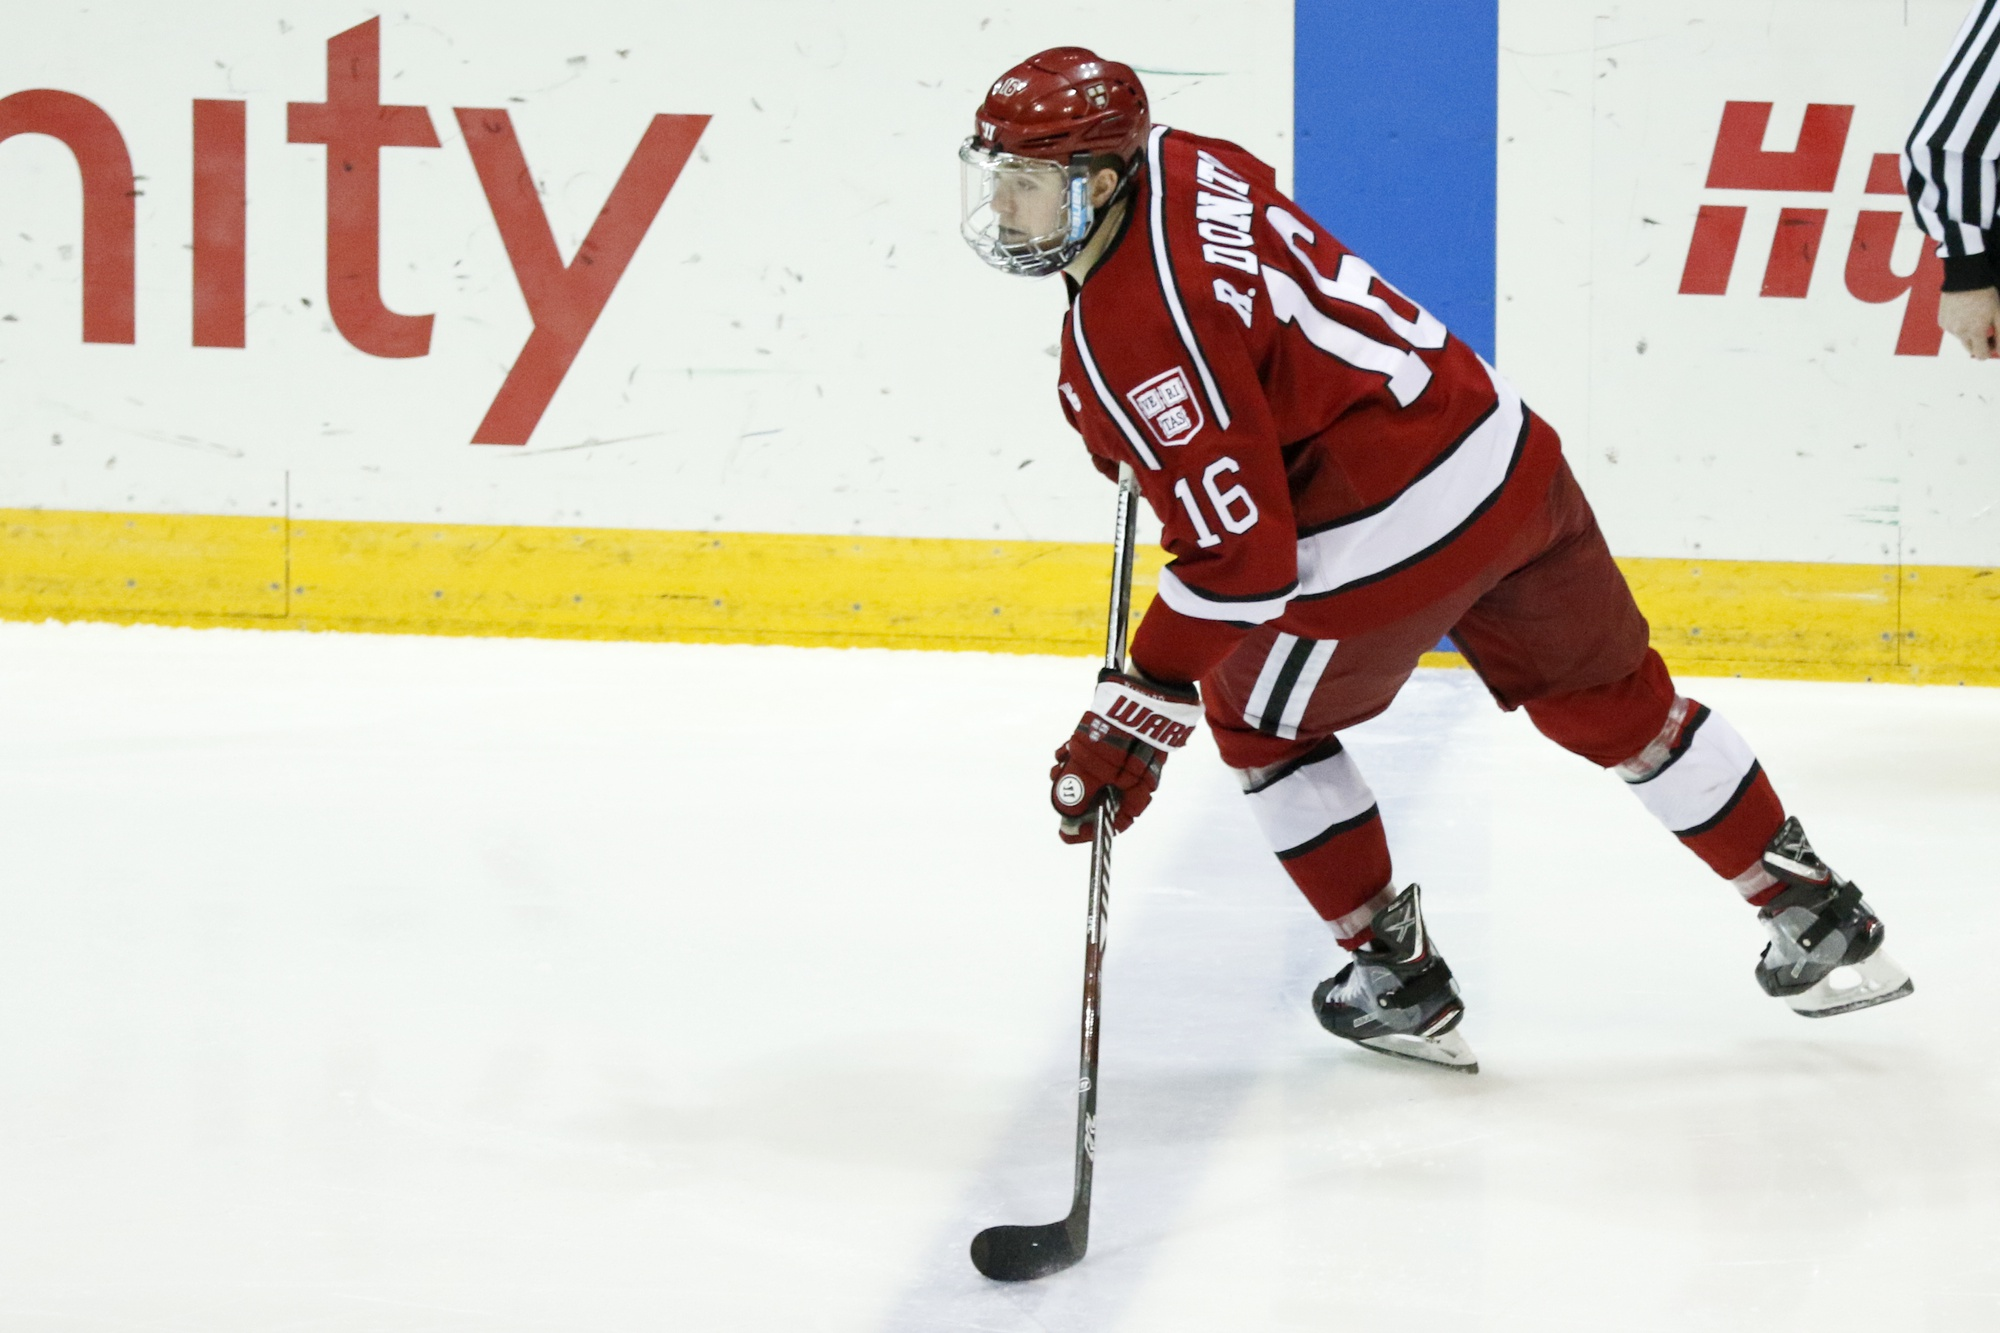 Donato's 14-game point streak to open the season, not to mention his NCAA-best 0.90 goals per game, were signs of his unique scoring ability.